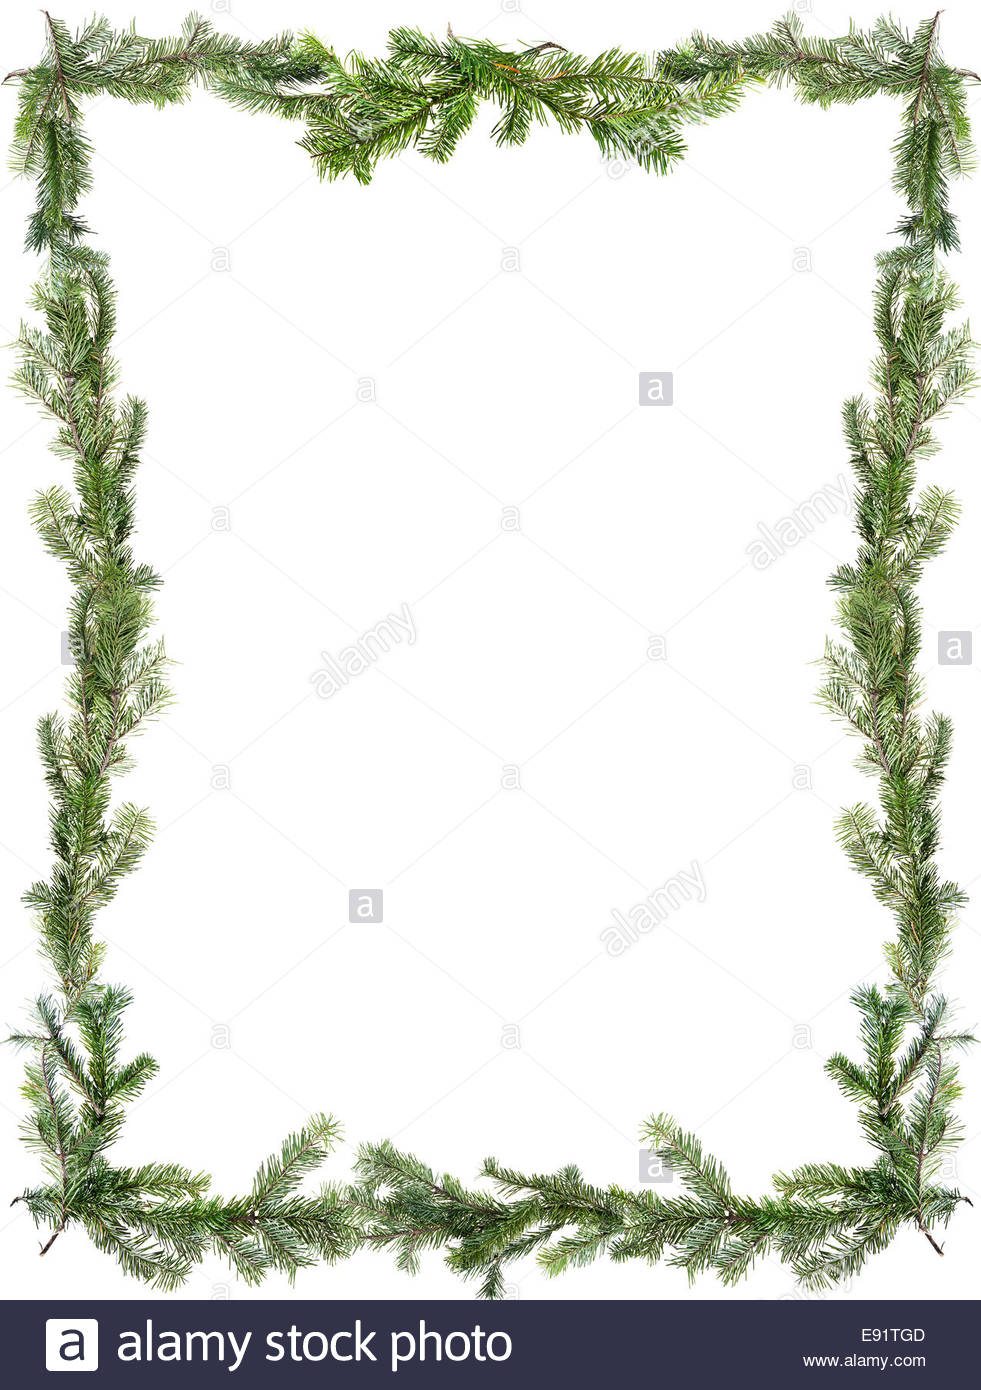 Design element.  Frame of spruce branches - Stock Image